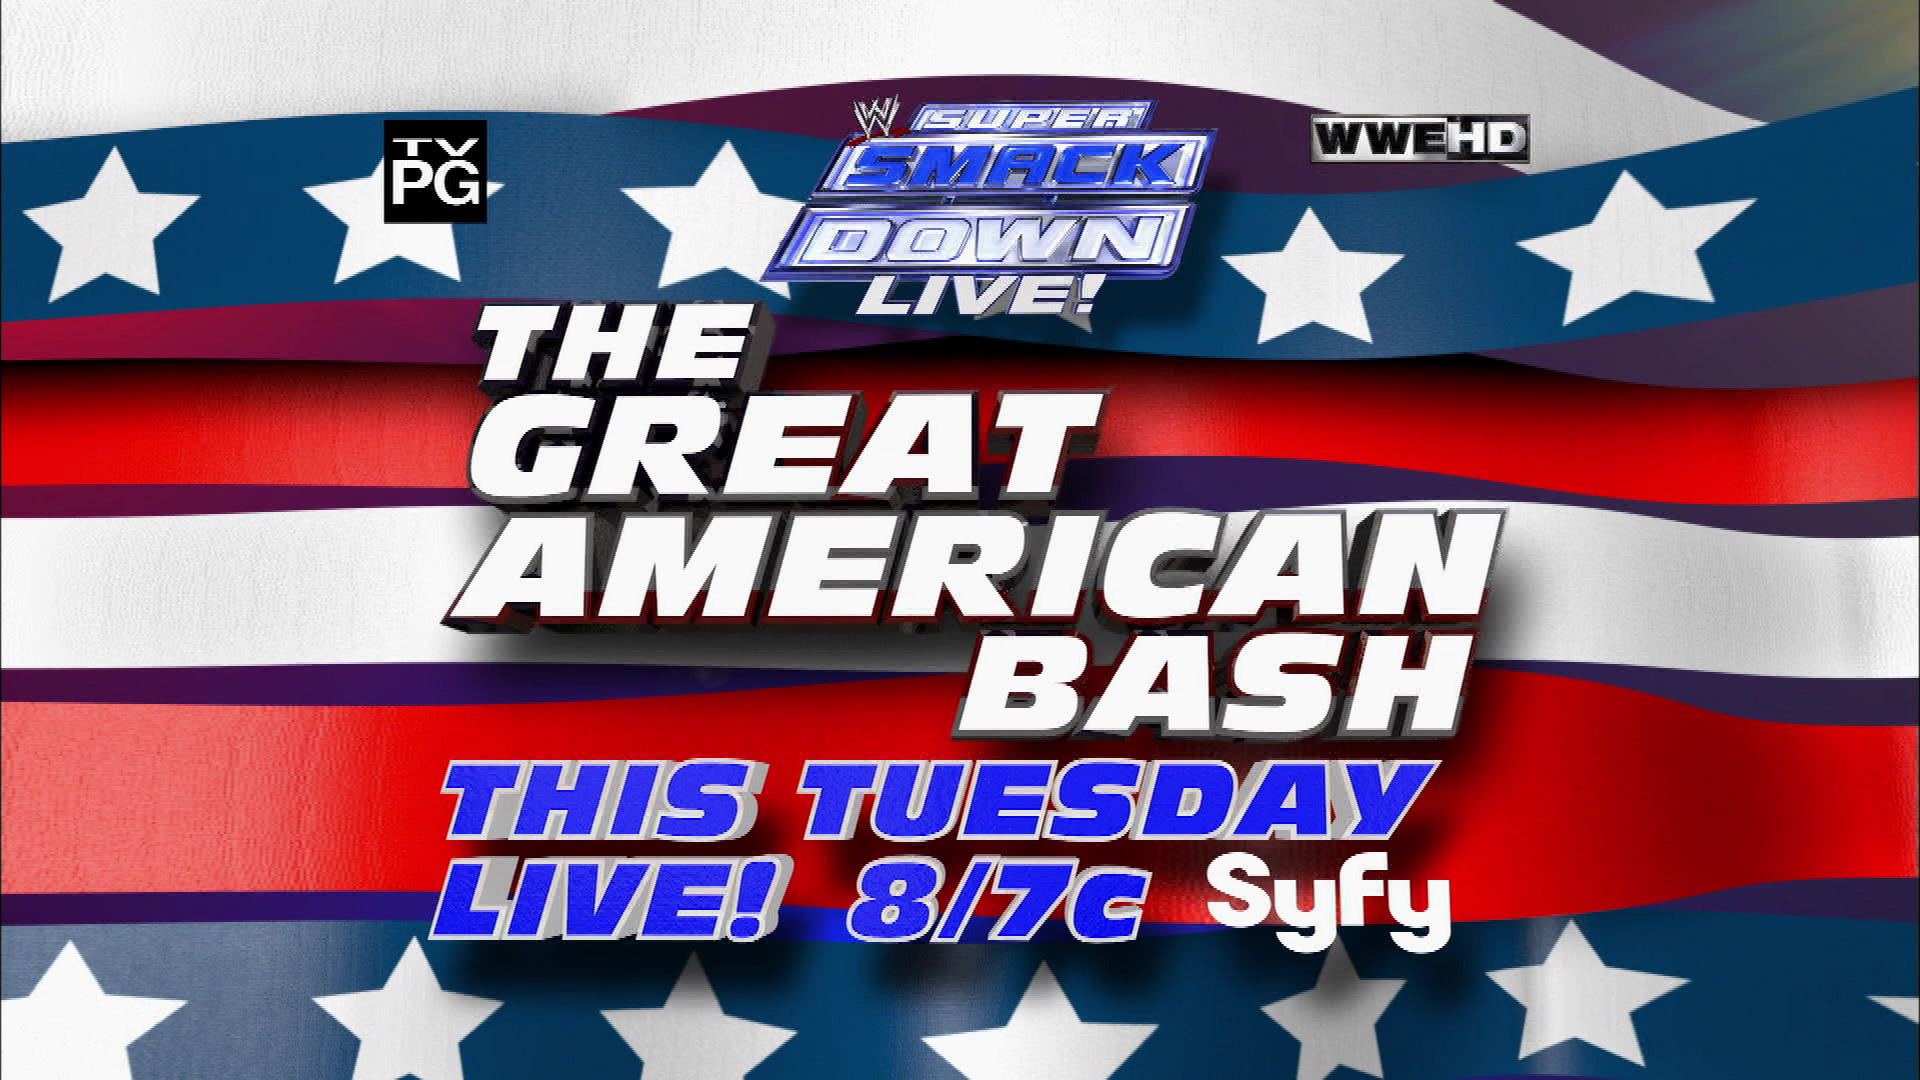 July 3, 2012 Smackdown results